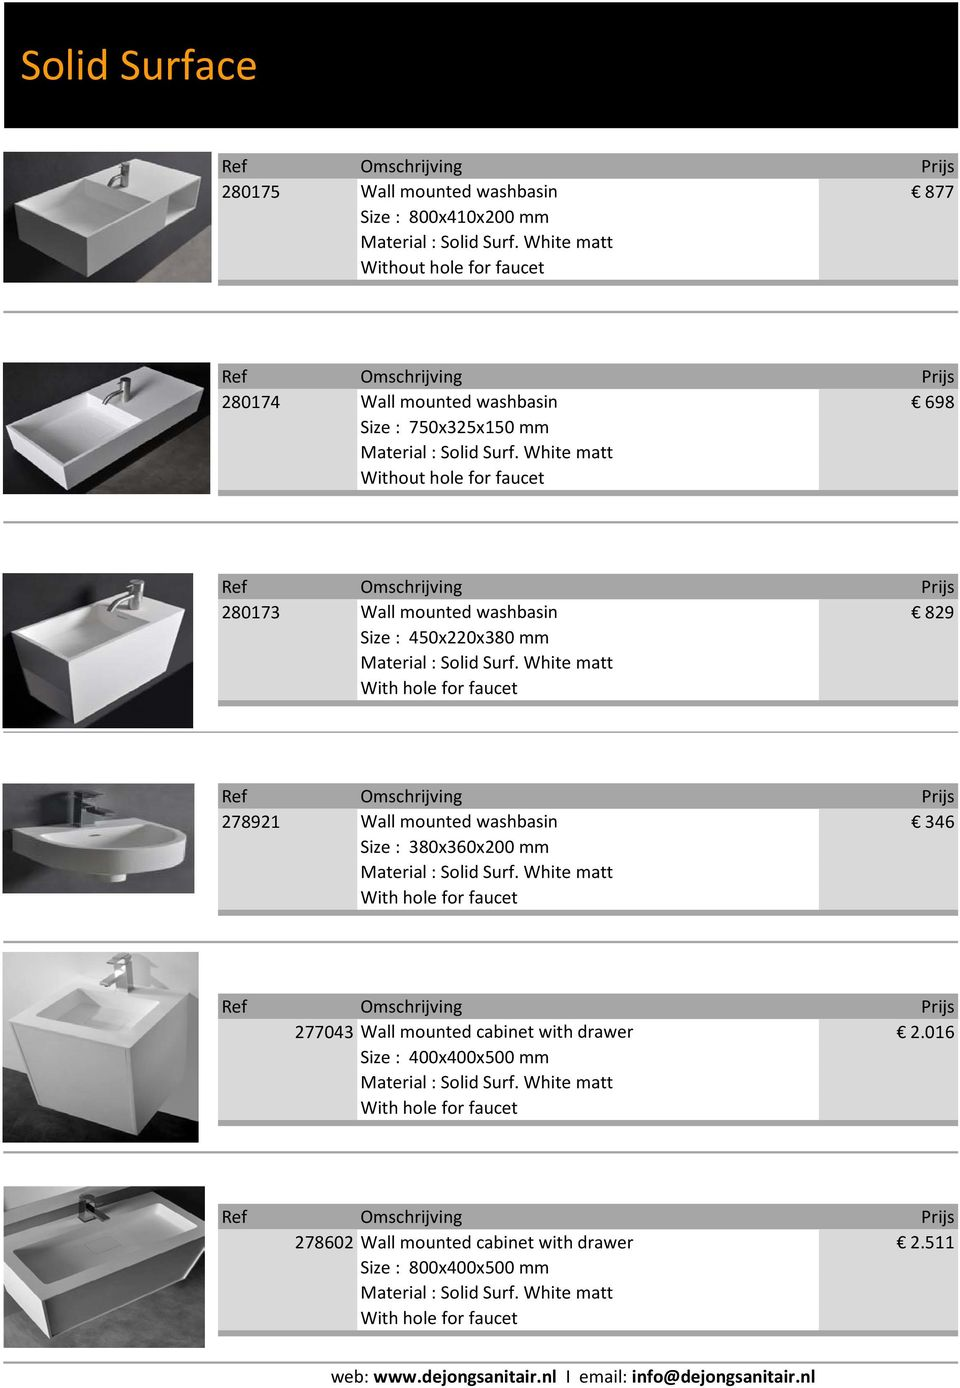 mounted washbasin 346 Size : 380x360x200 mm 277043 Wall mounted cabinet with drawer 2.